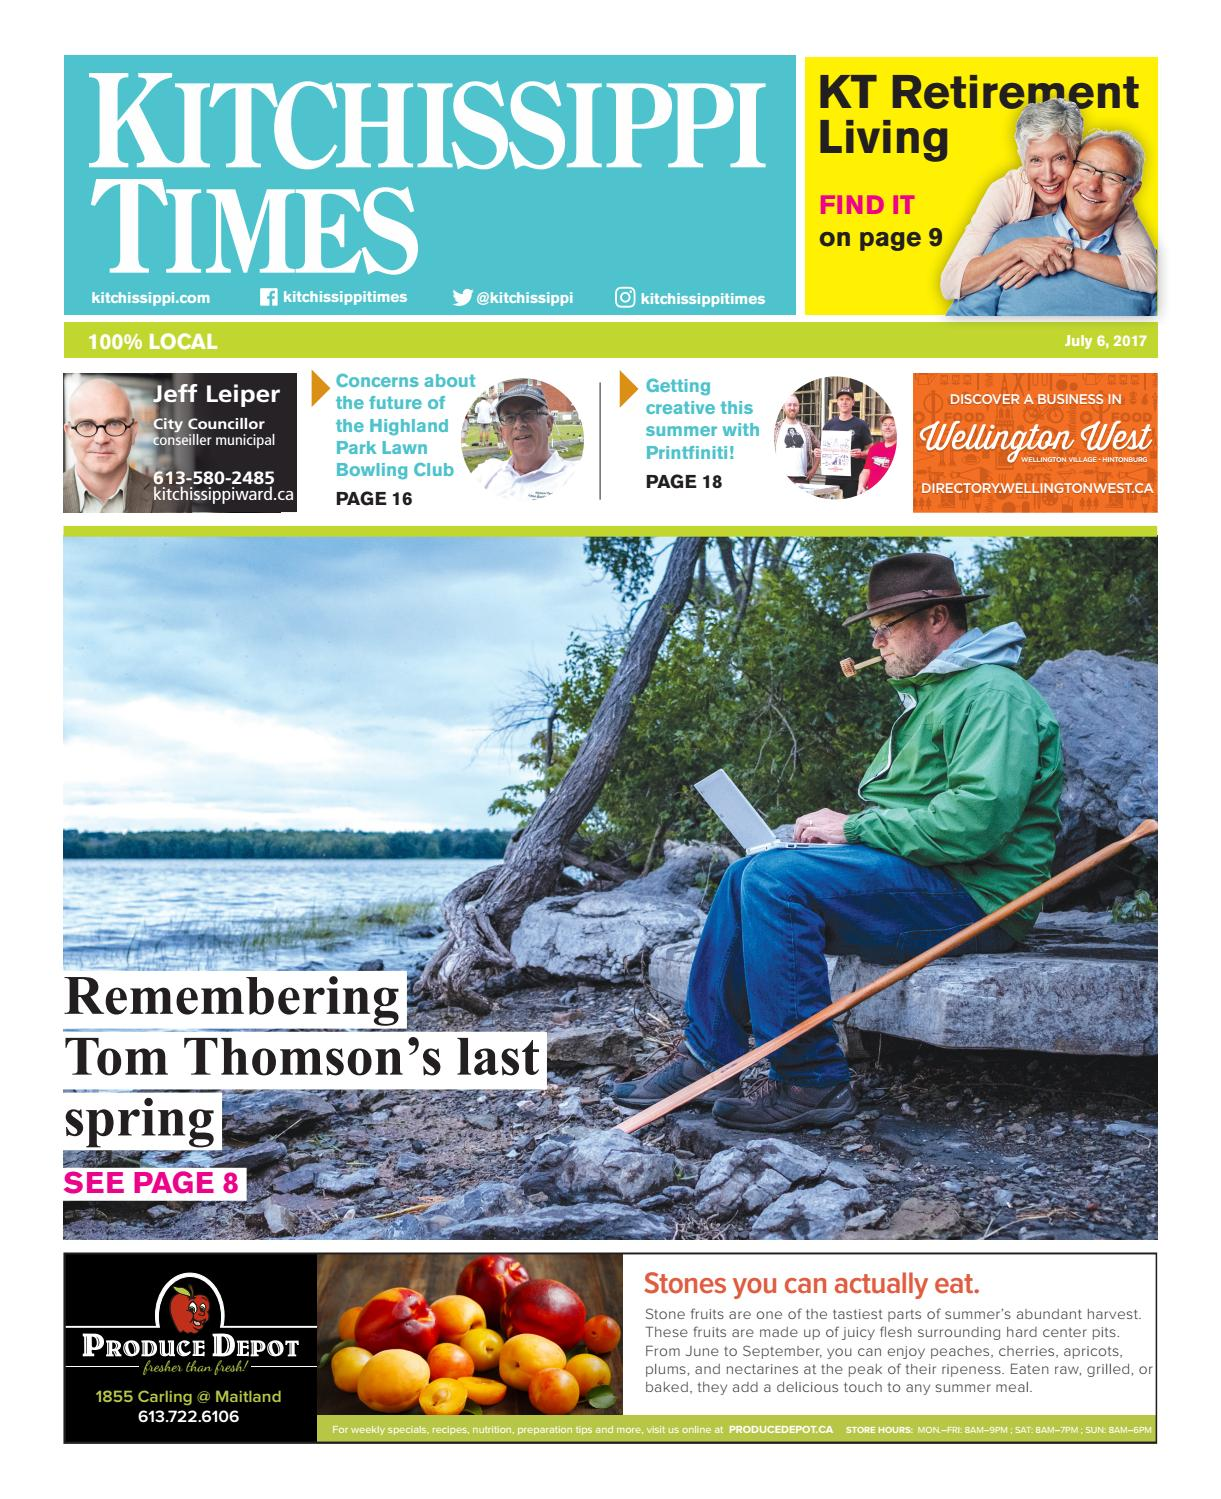 Kitchissippi Times | July 6, 2017 by Great River Media inc  - issuu